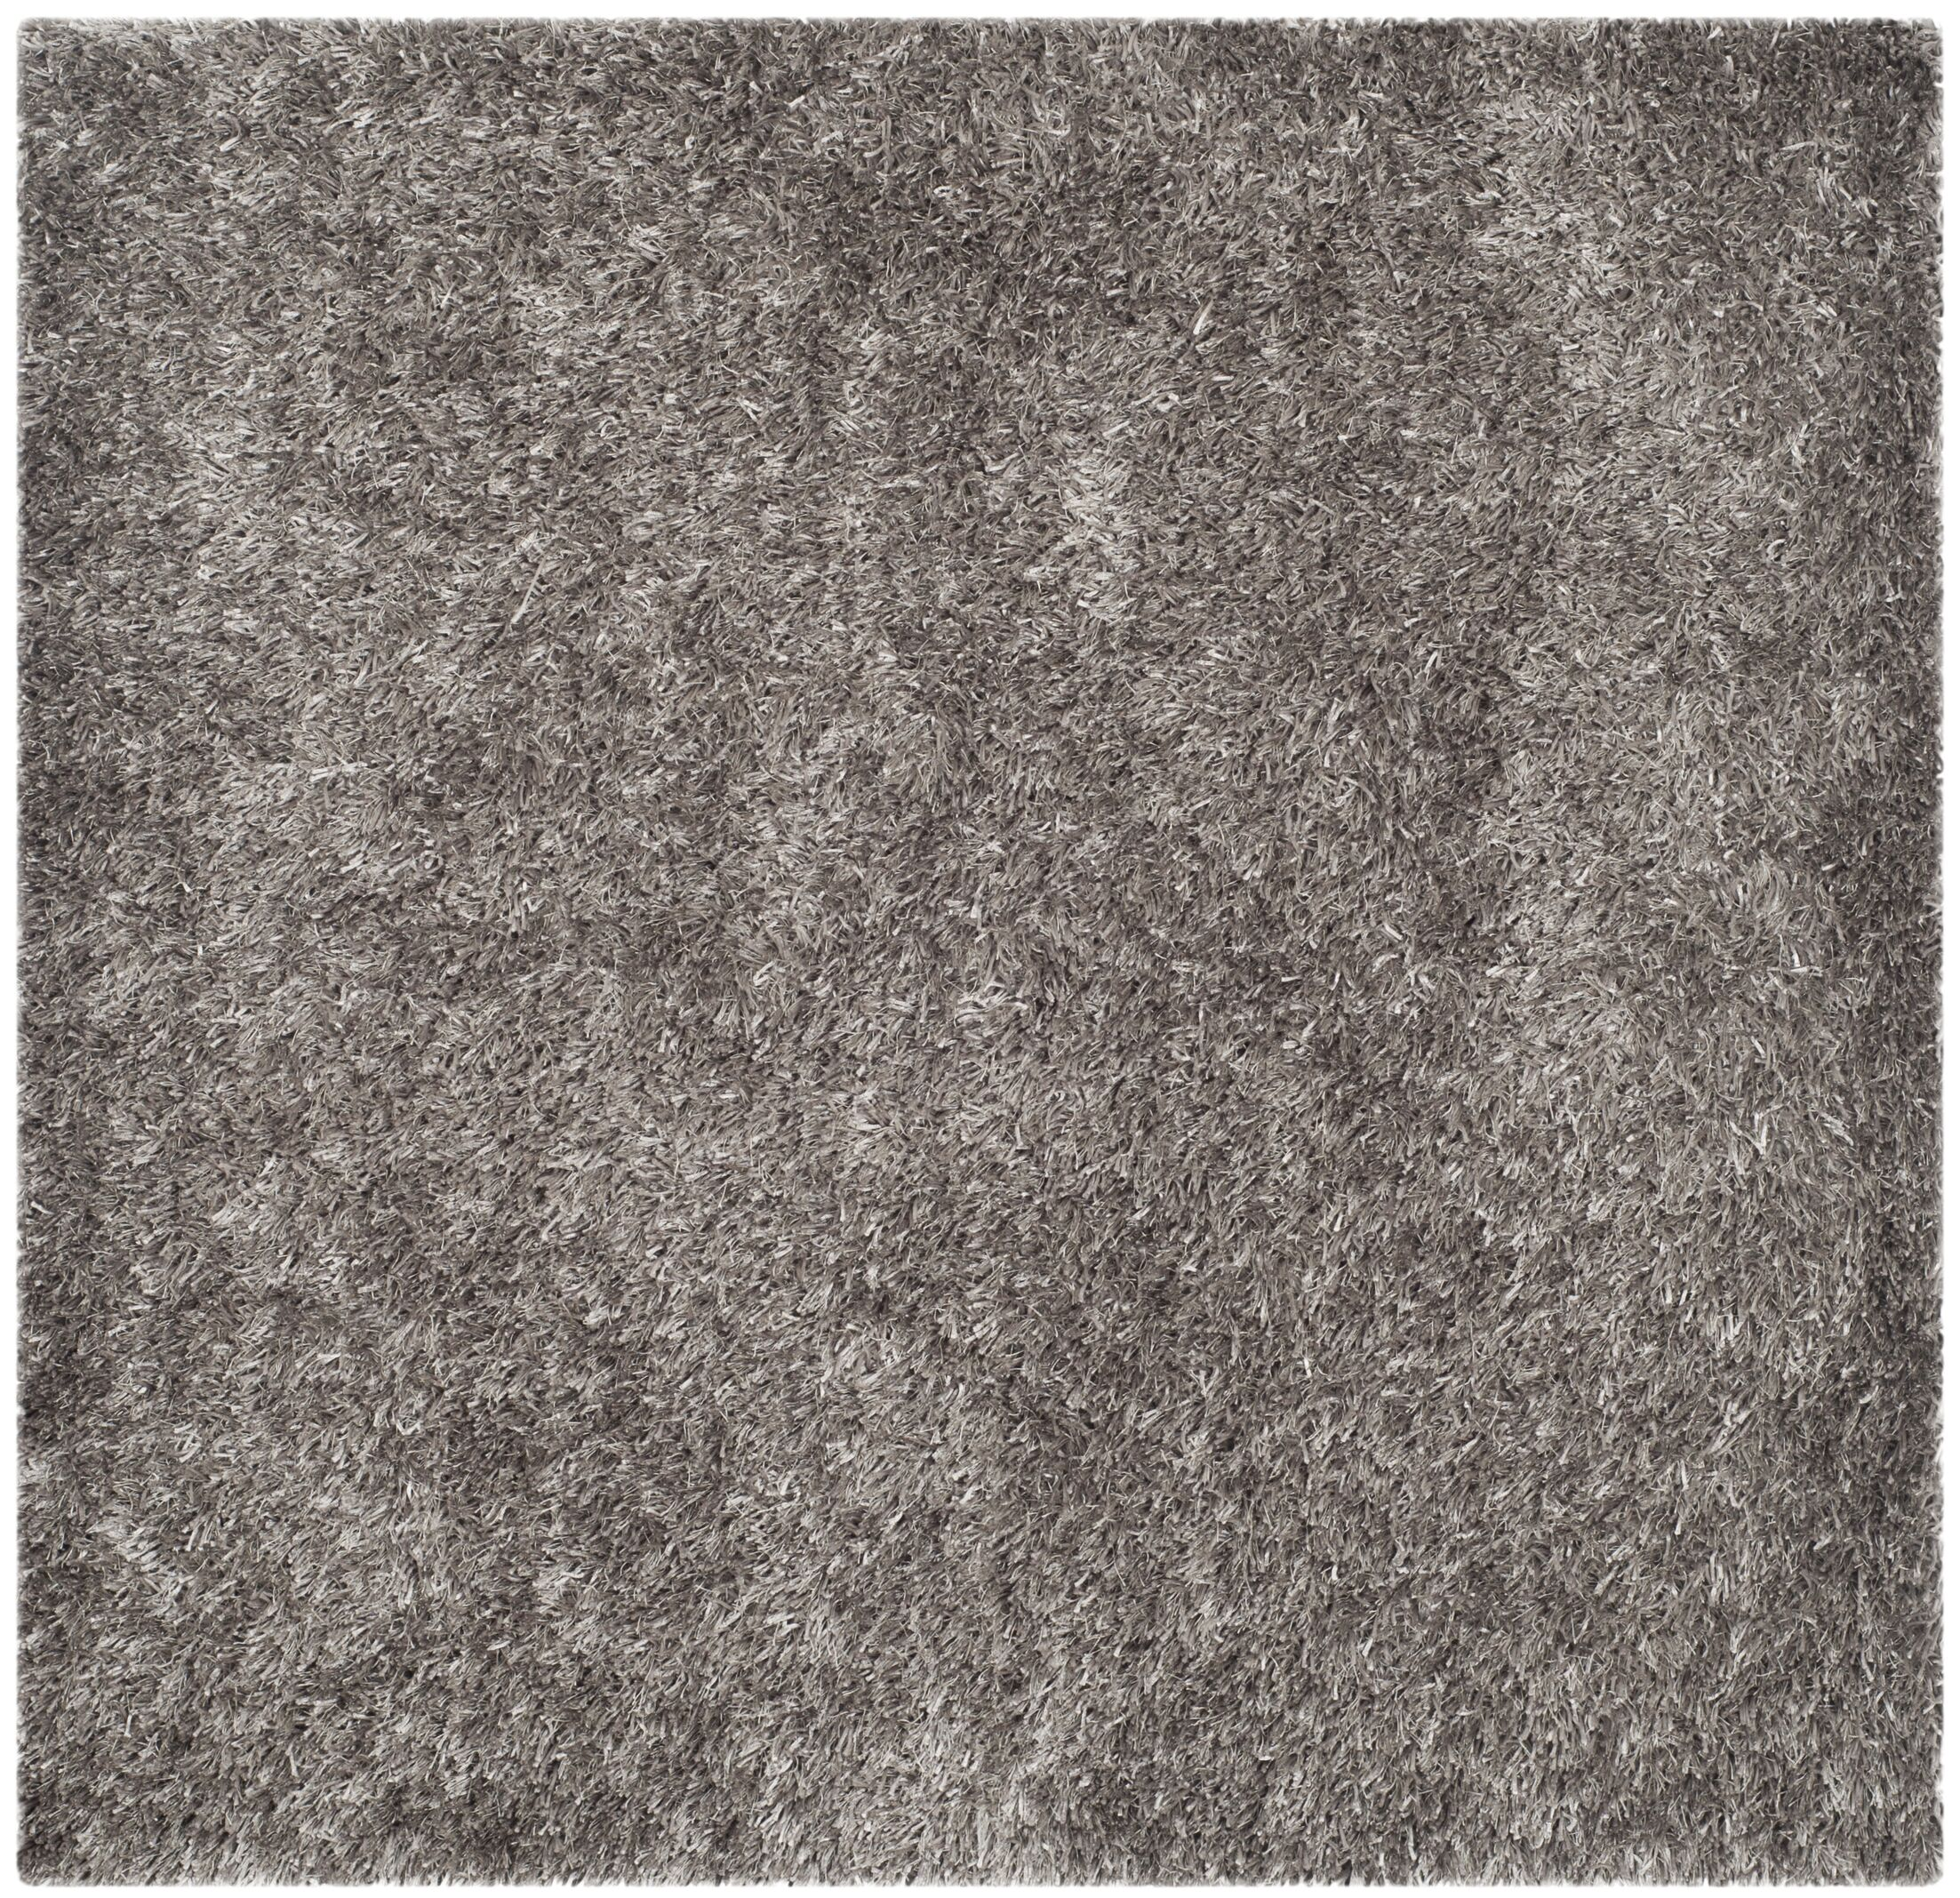 Cheevers Handmade Gray Area Rug Rug Size: Square 5'